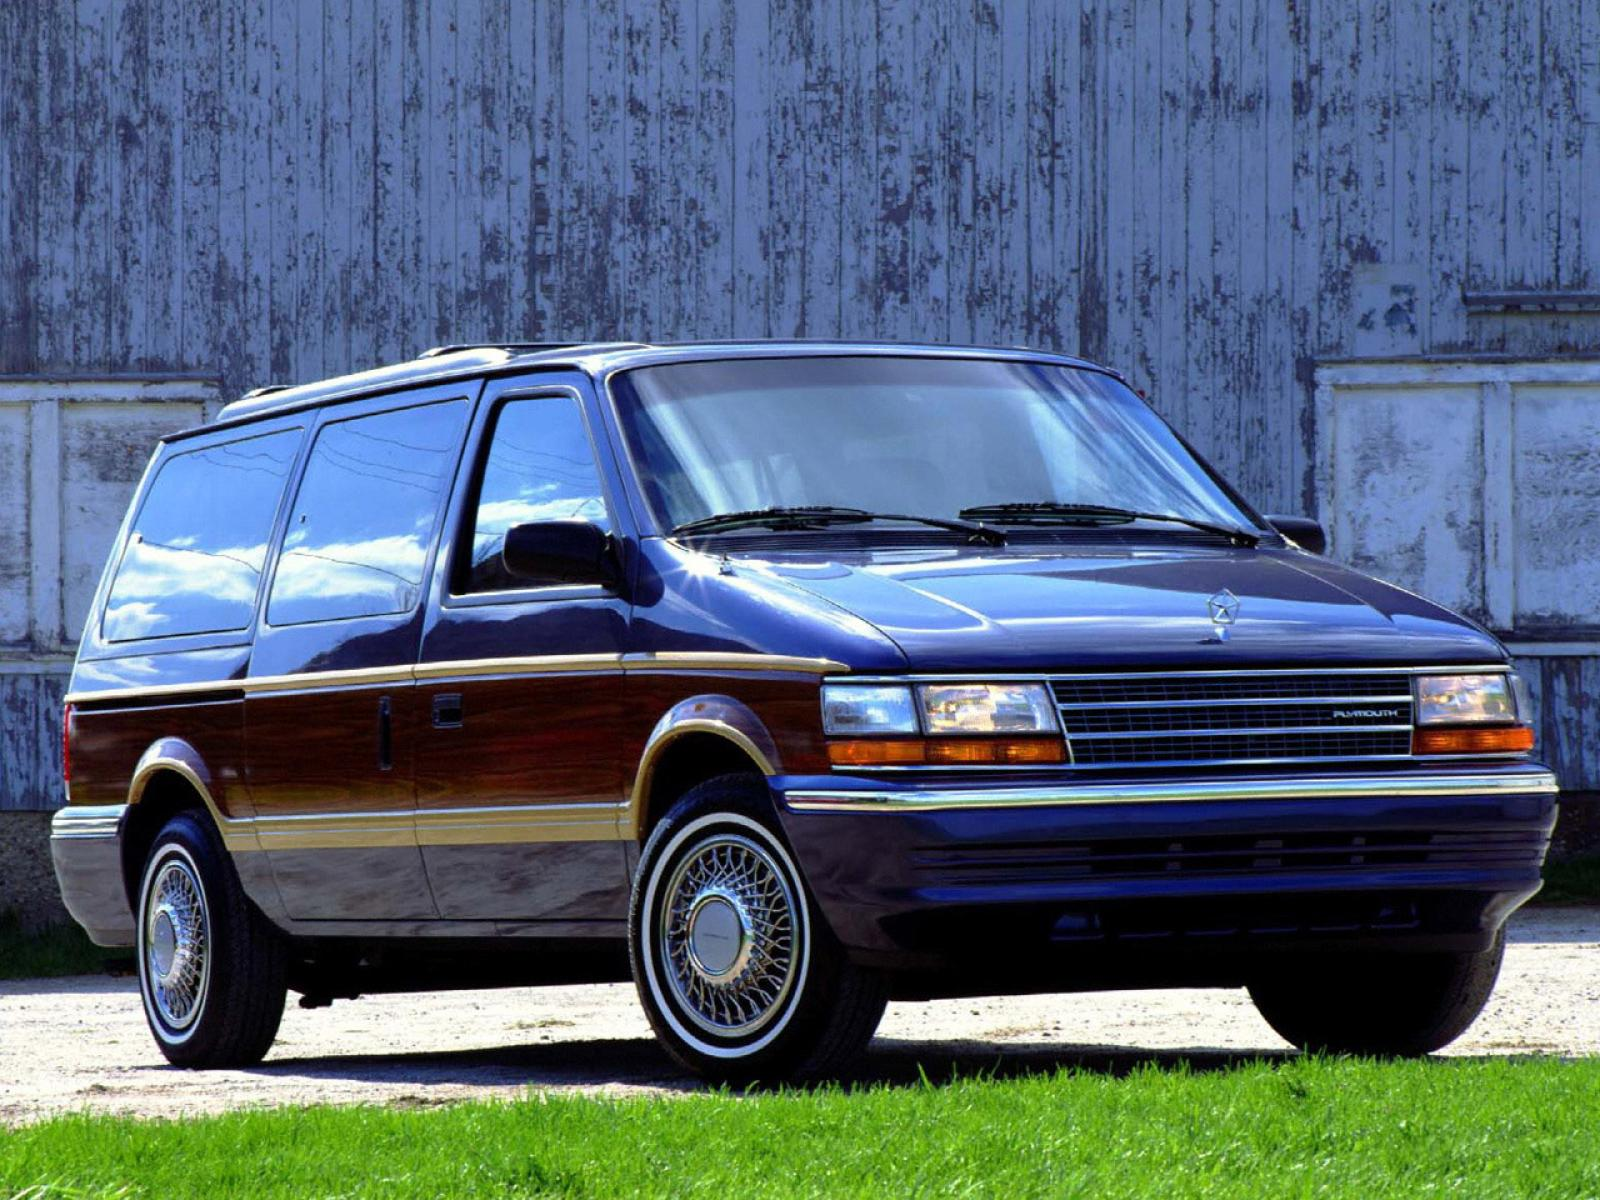 1993 plymouth grand voyager information and photos zombiedrive rh zombdrive  com